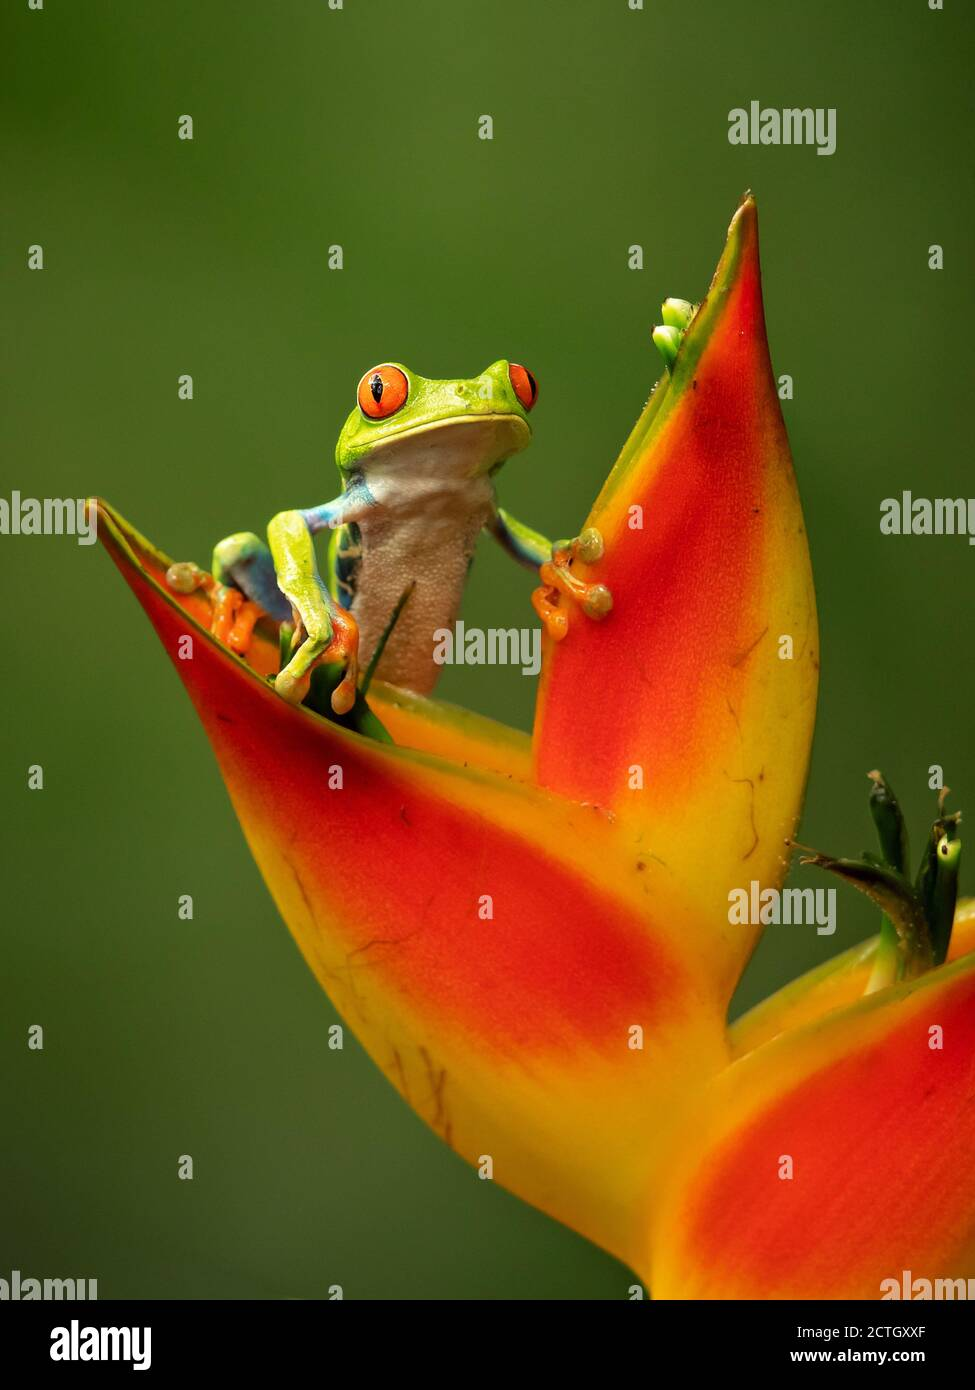 Agalychnis callidryas, known as the red-eyed treefrog, is an arboreal hylid native to Neotropical rainforests. Taken in Costa Rica Stock Photo